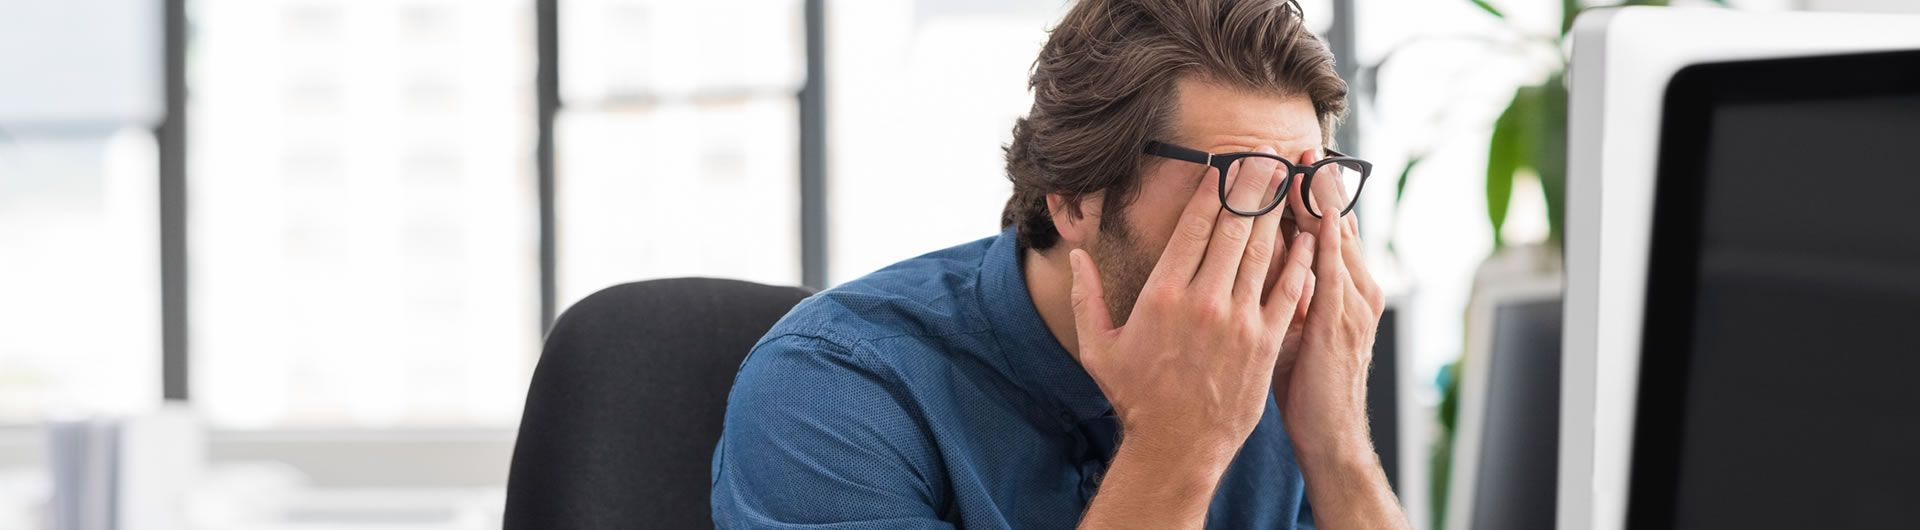 Man at computer stressed at work